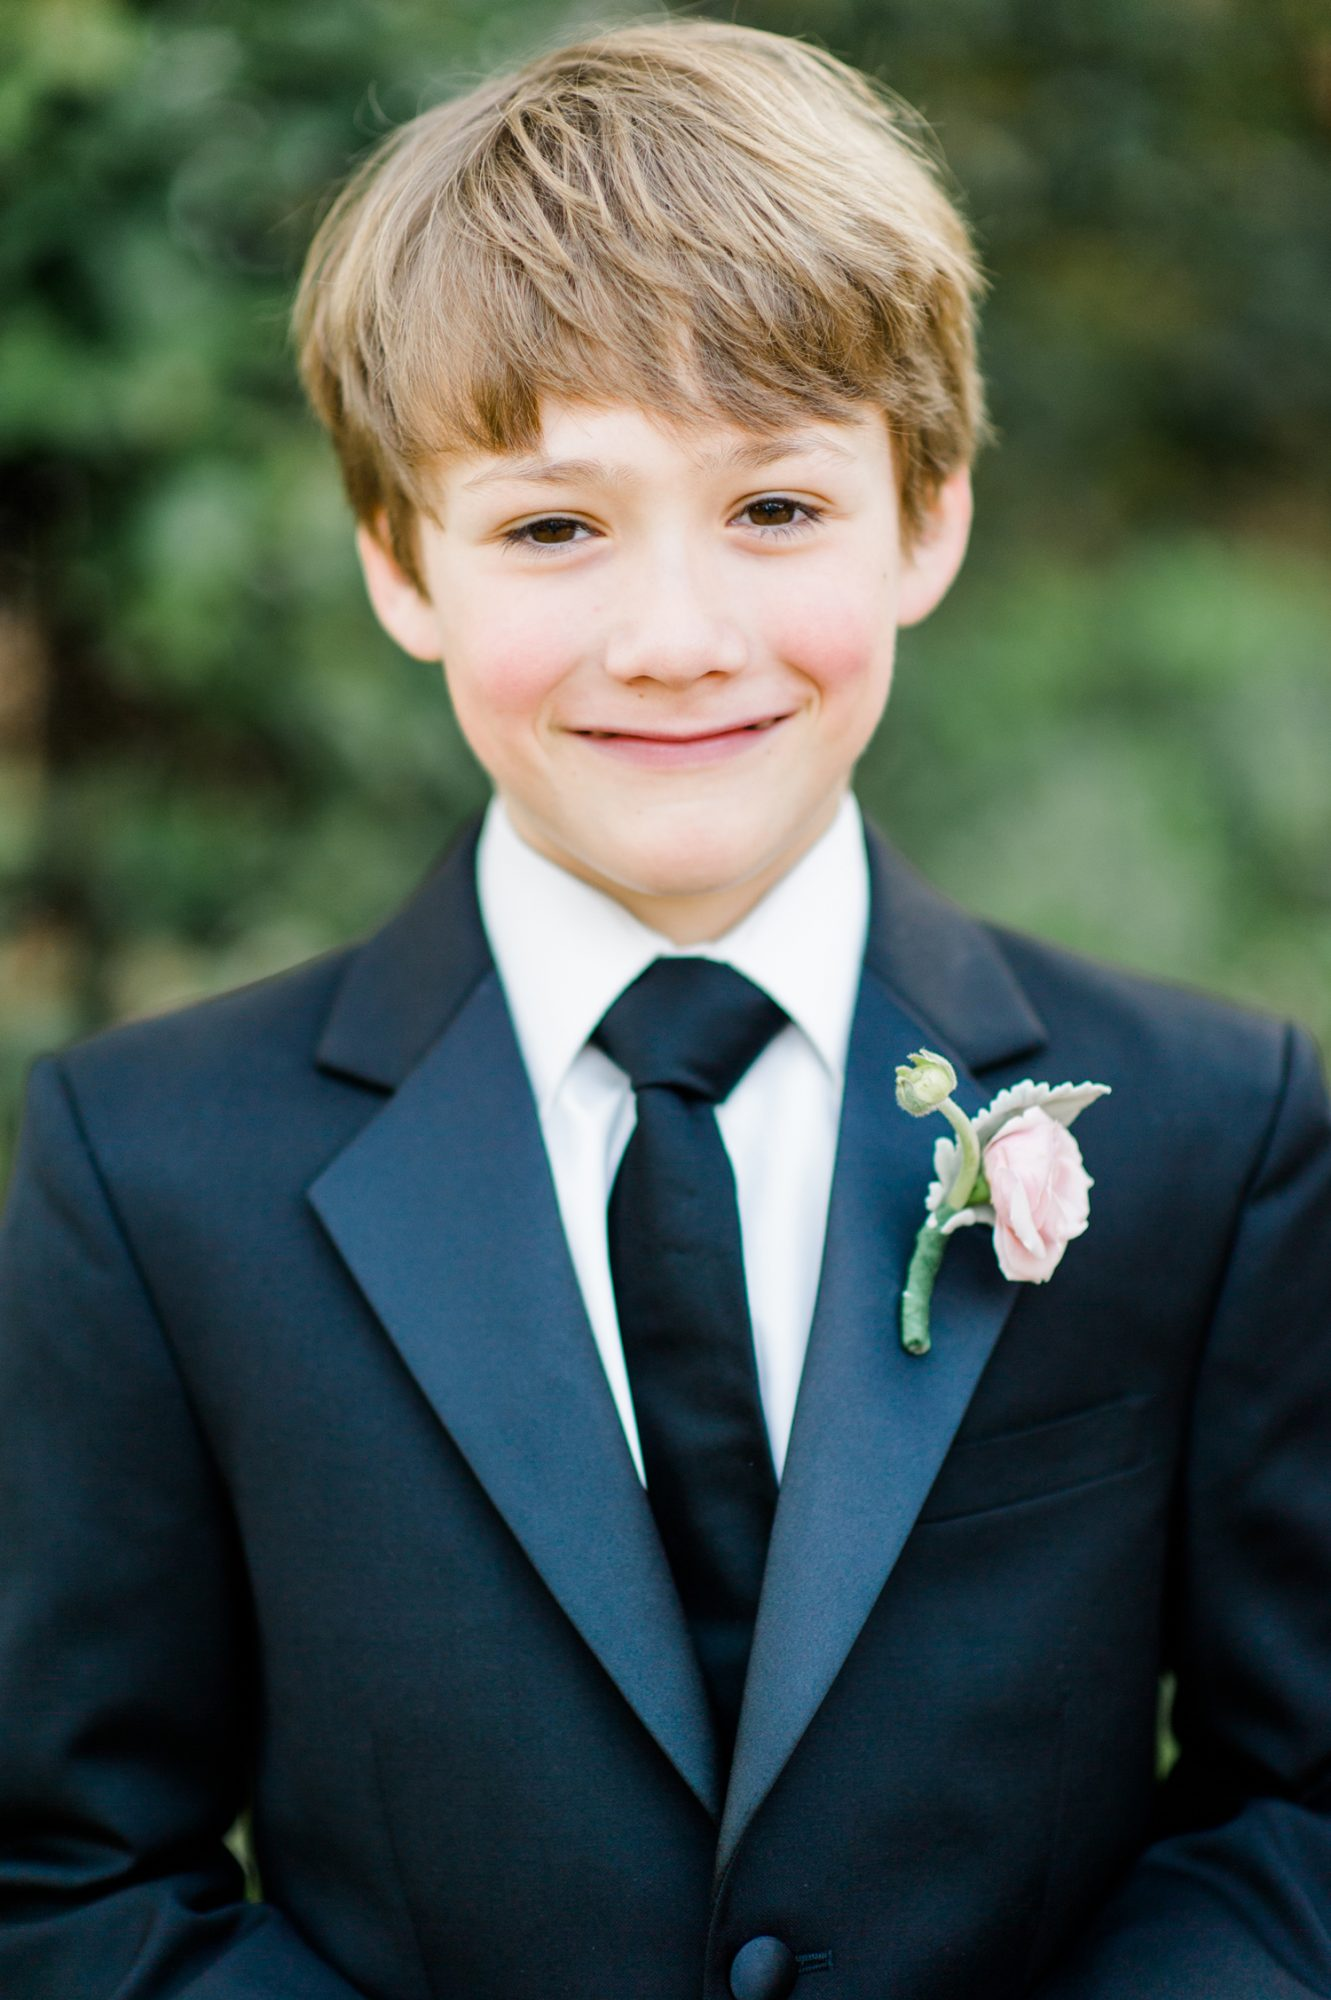 Simple Ring Bearer Boutonnière